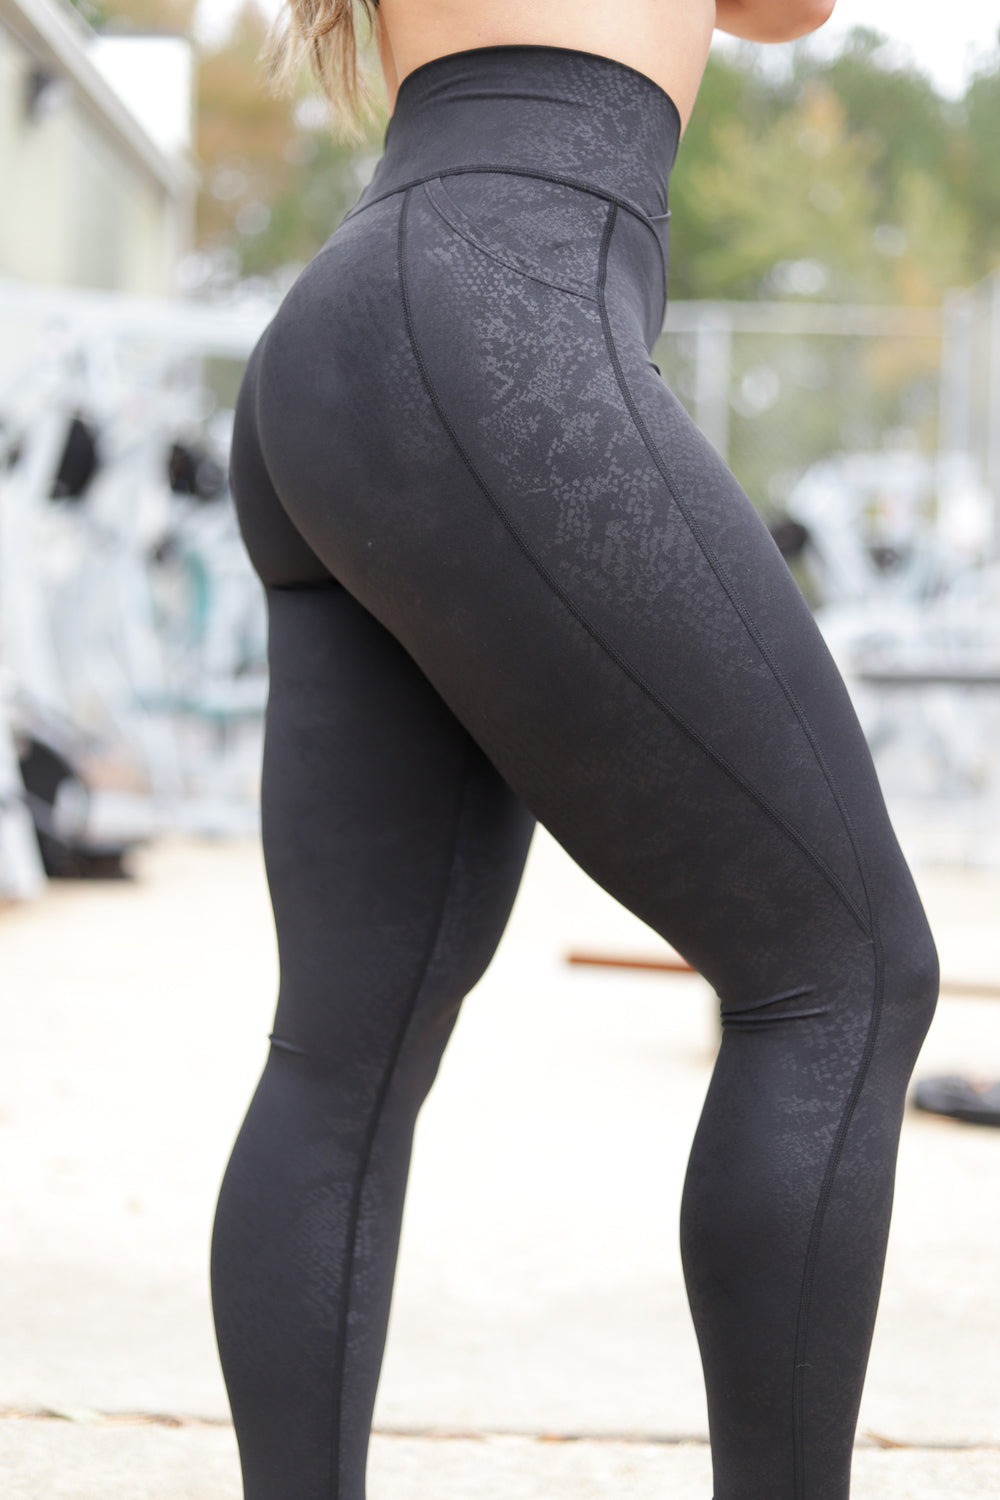 Snakeskin, Black, V4 leggings with pockets